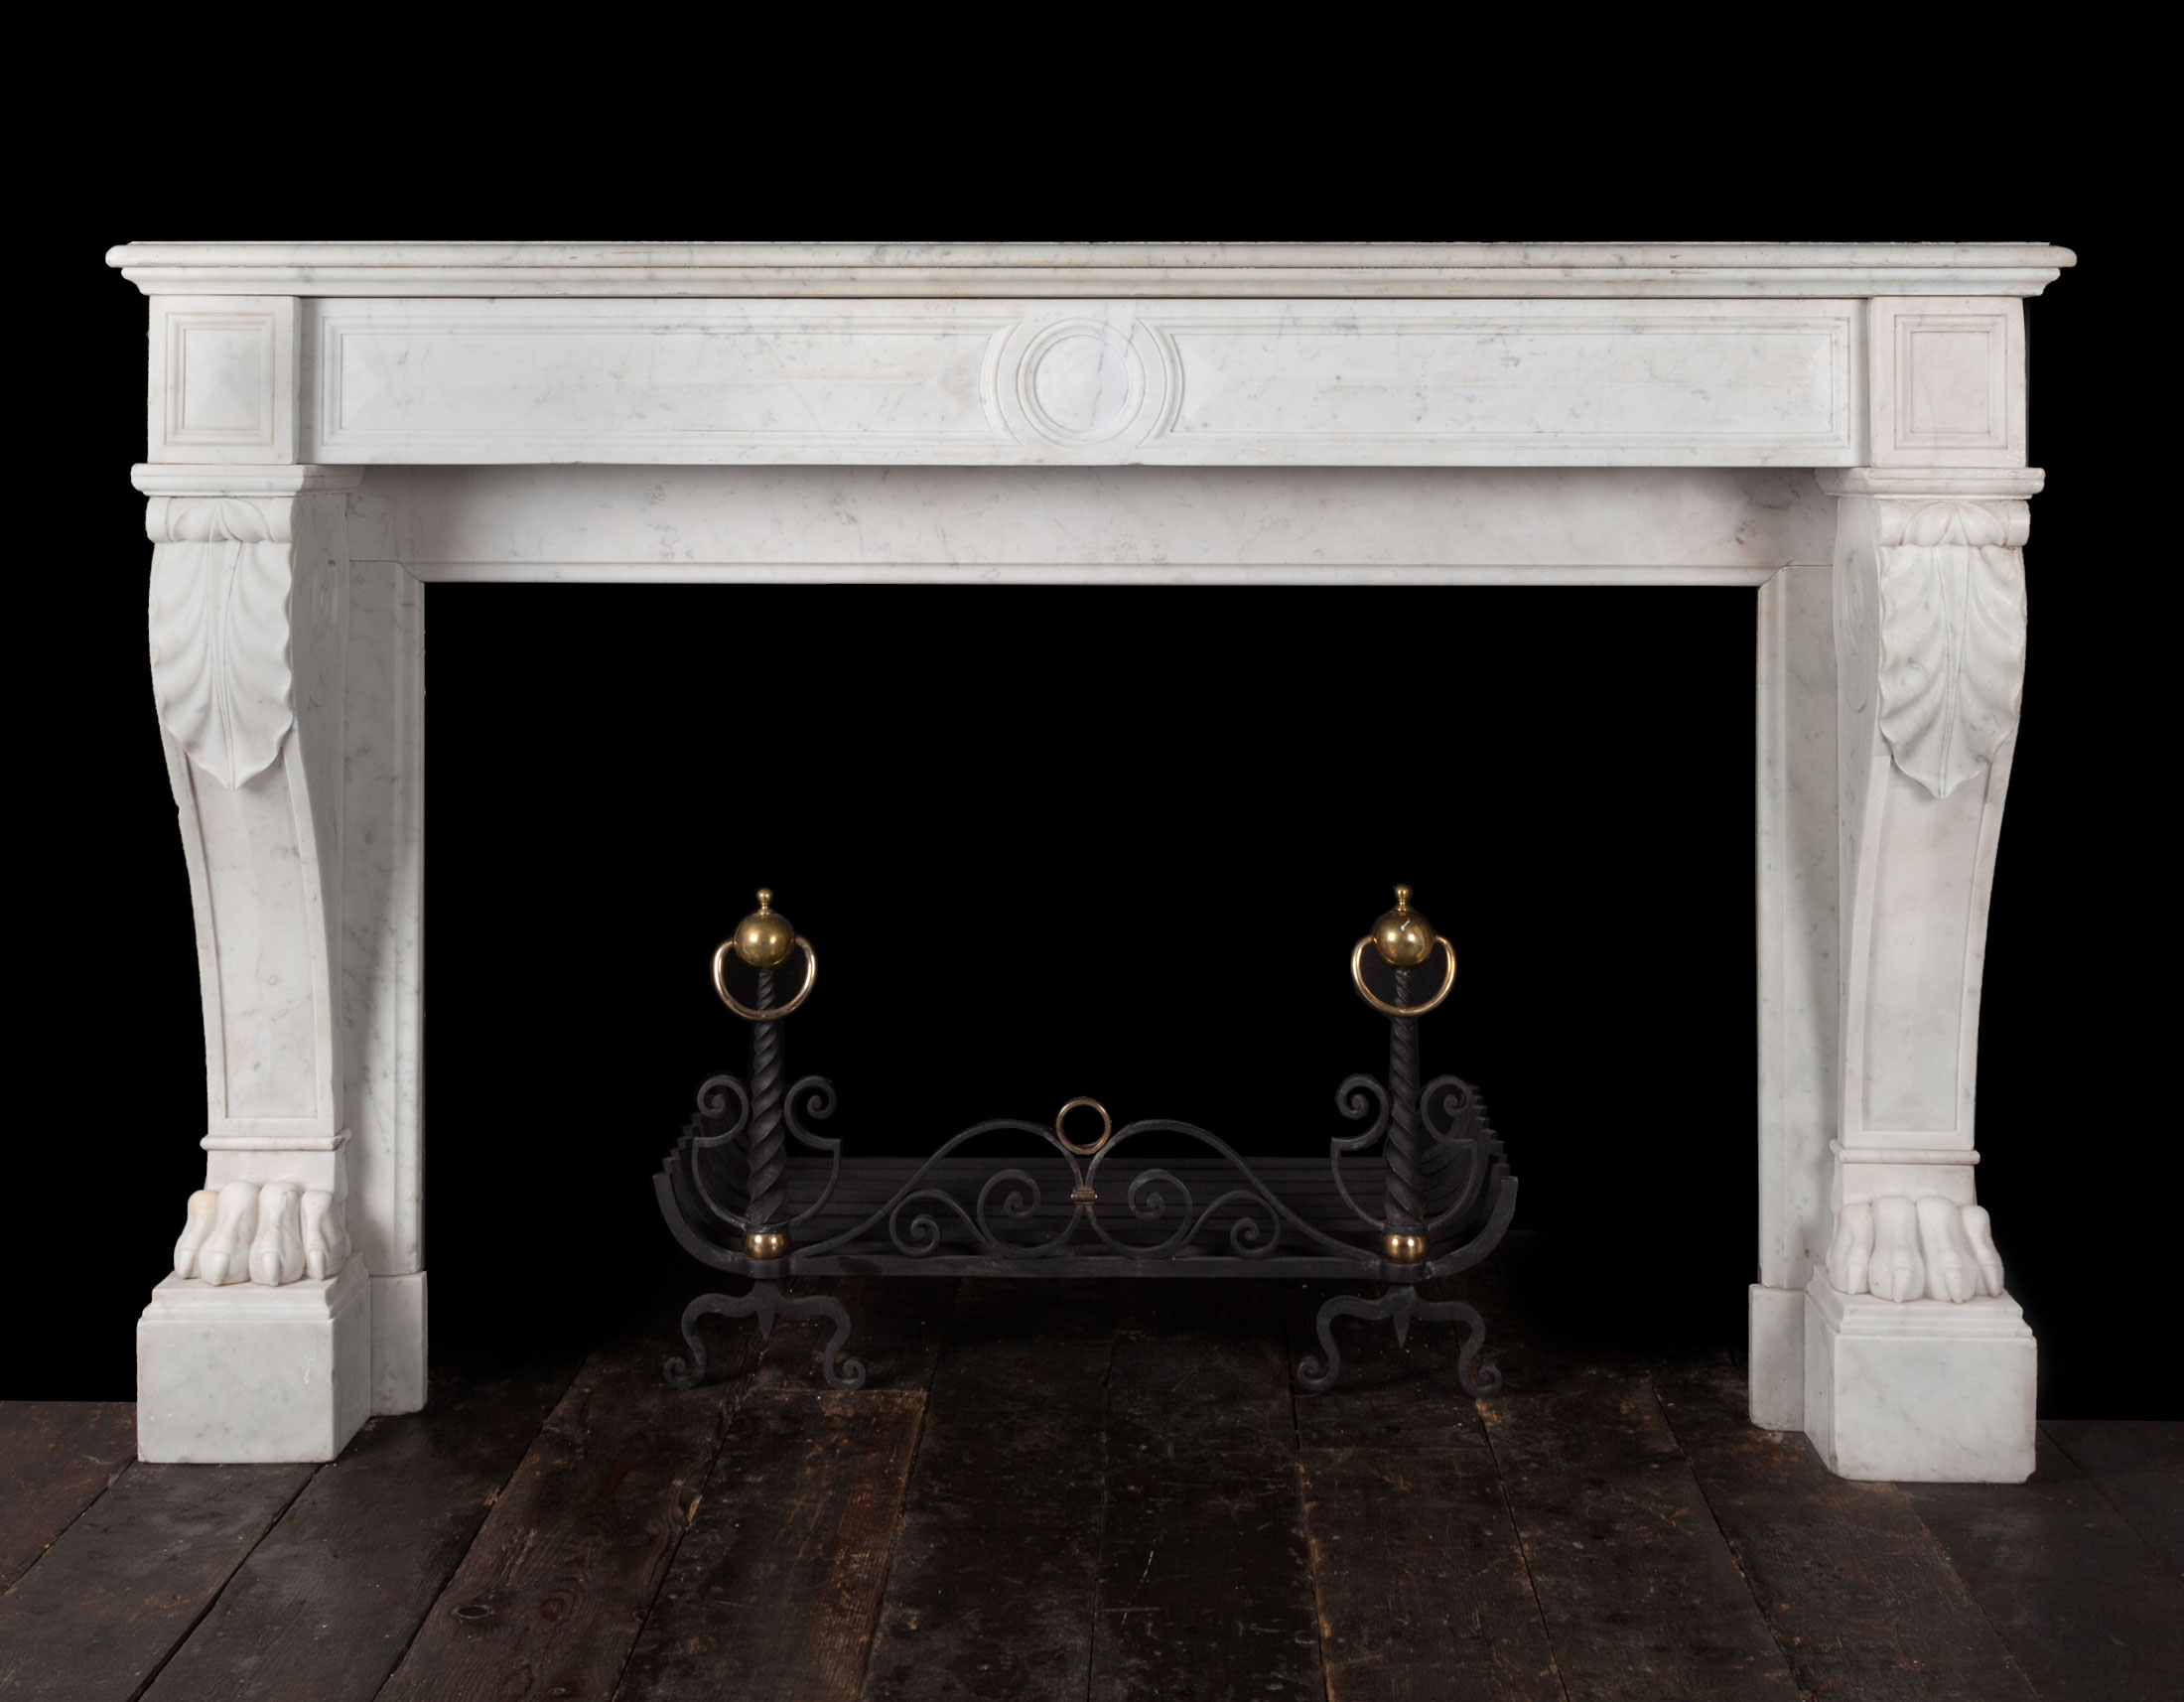 Antique Carrara Marble Fireplace – 19271